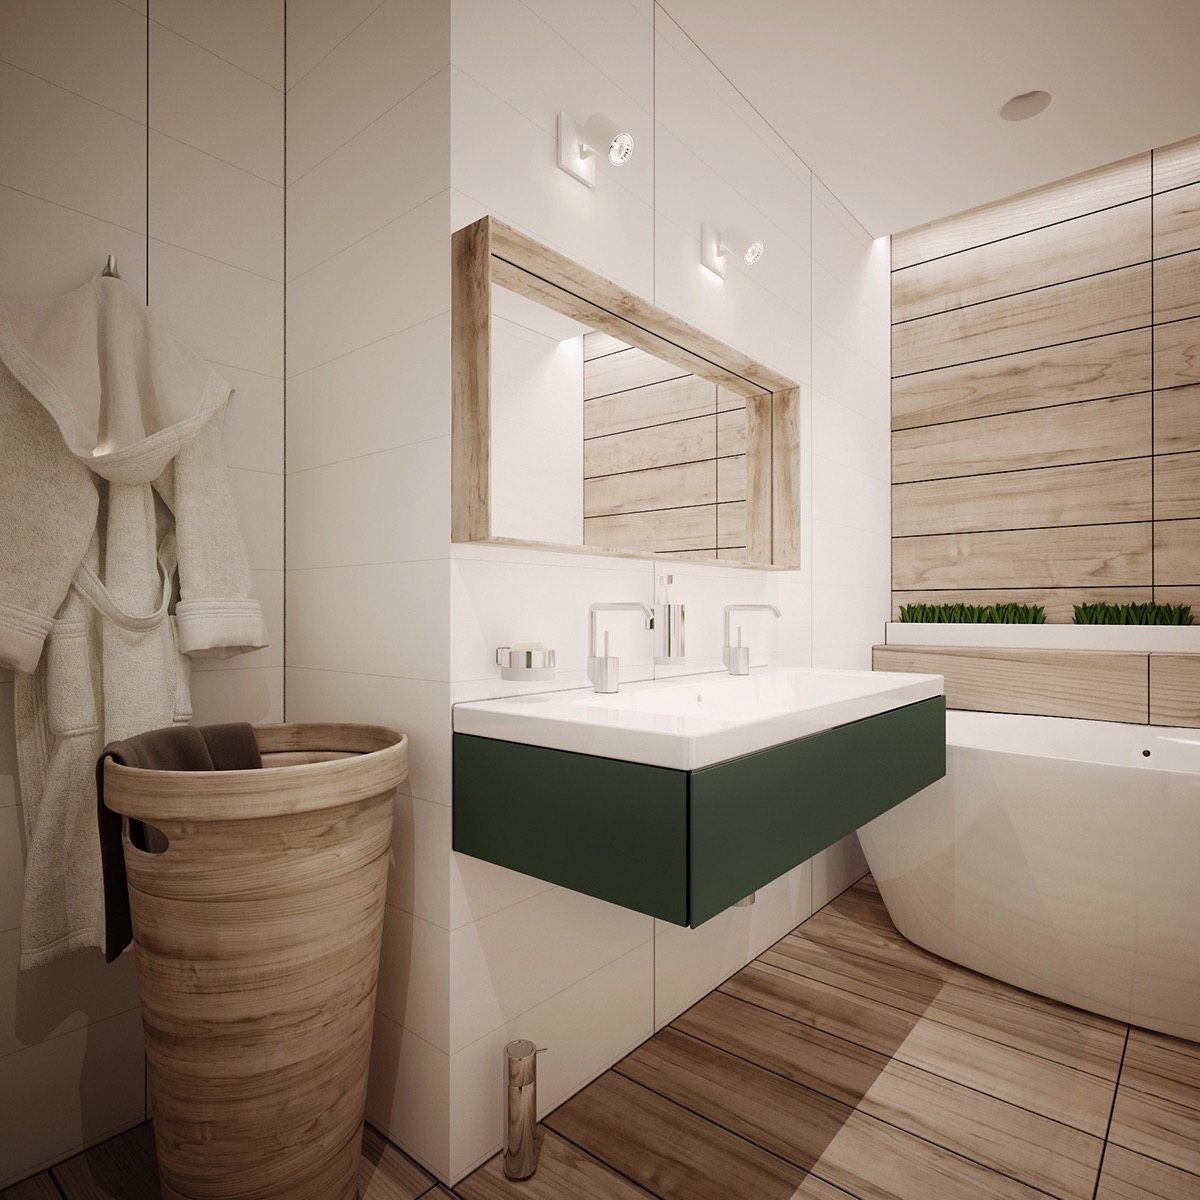 apartment interior bathroom design